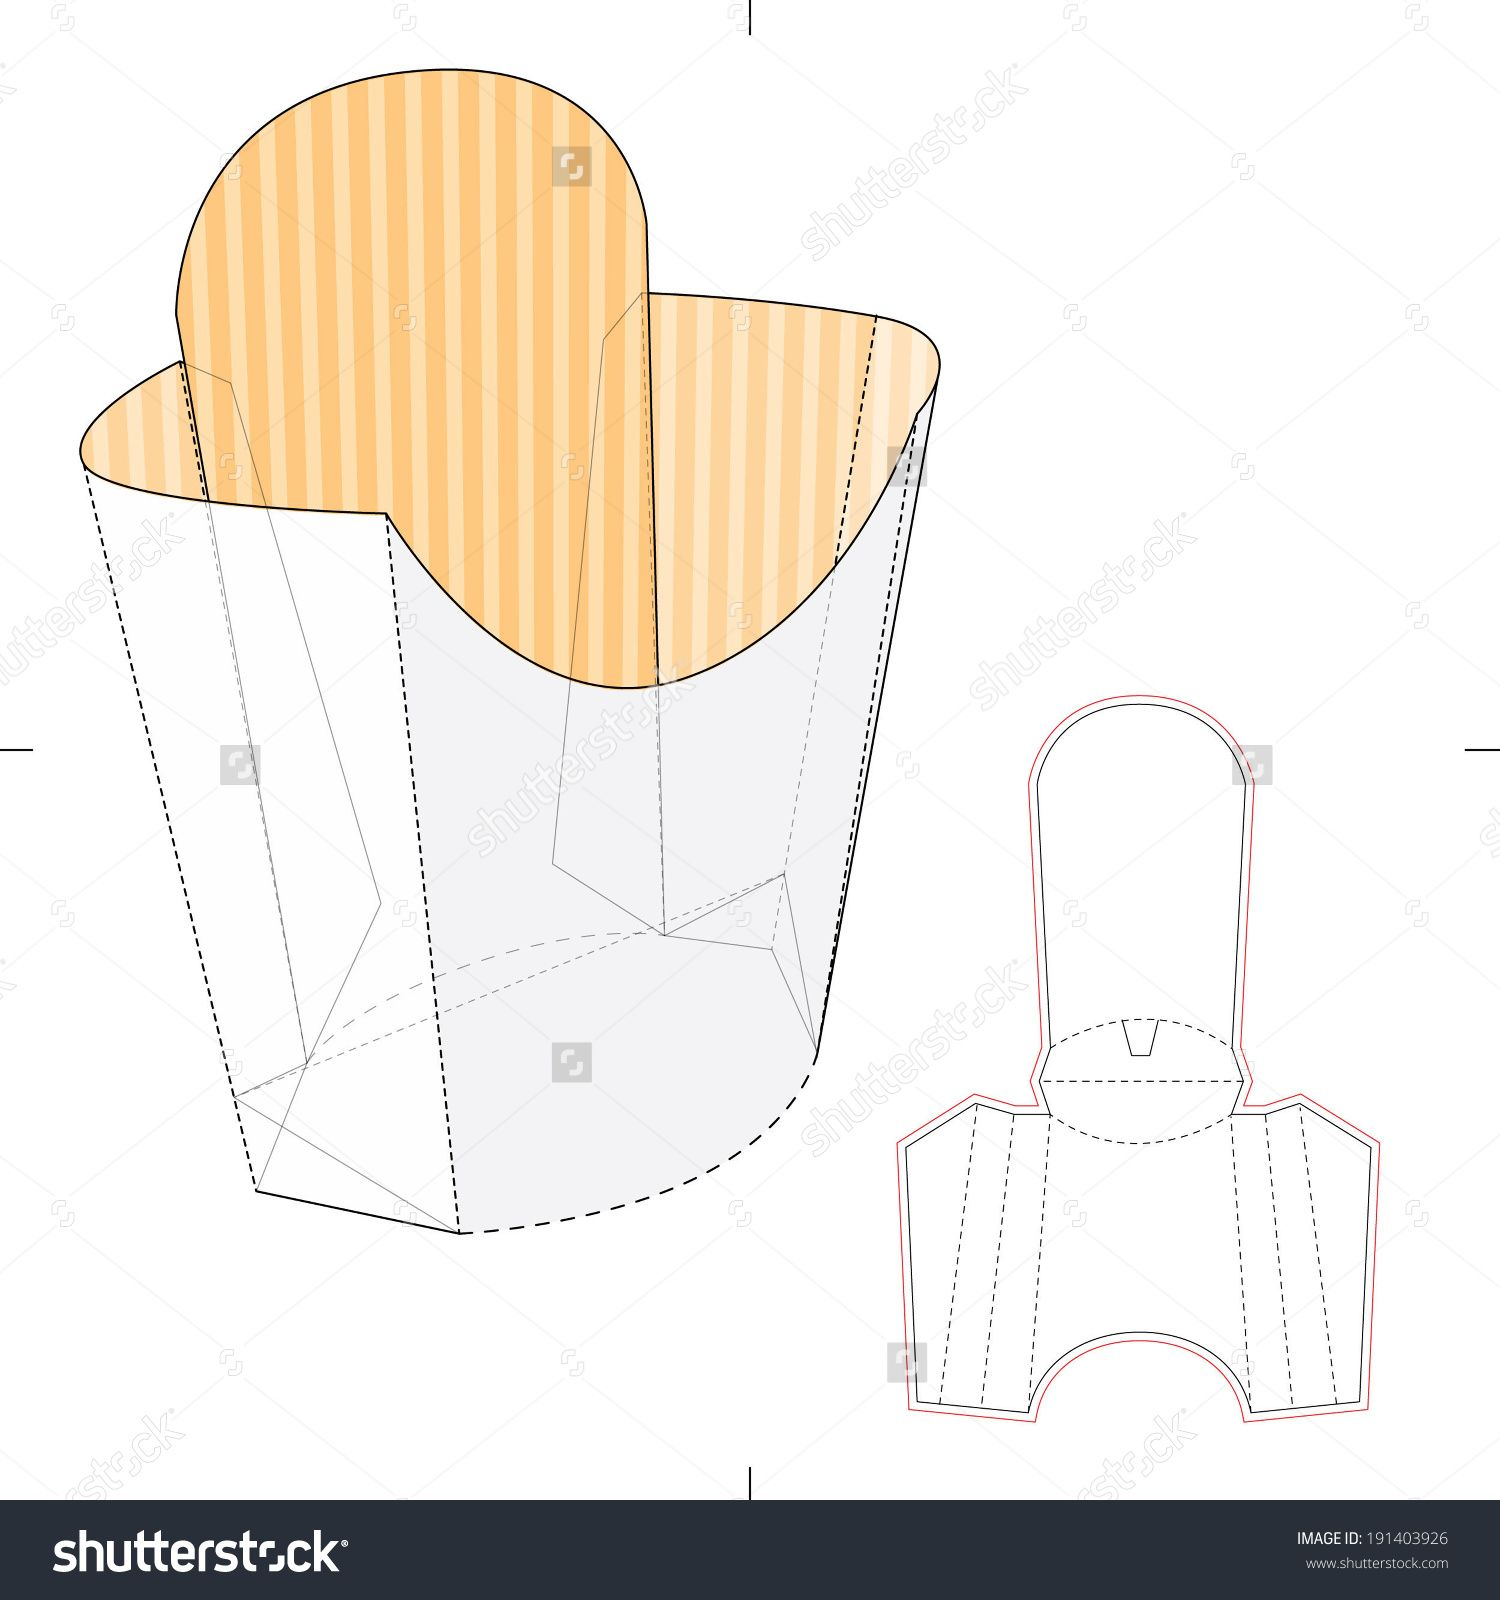 French Fries Disposable Paper Box With Die Cut Layout Stock Vector Illustration 191403926 : Shutterstock